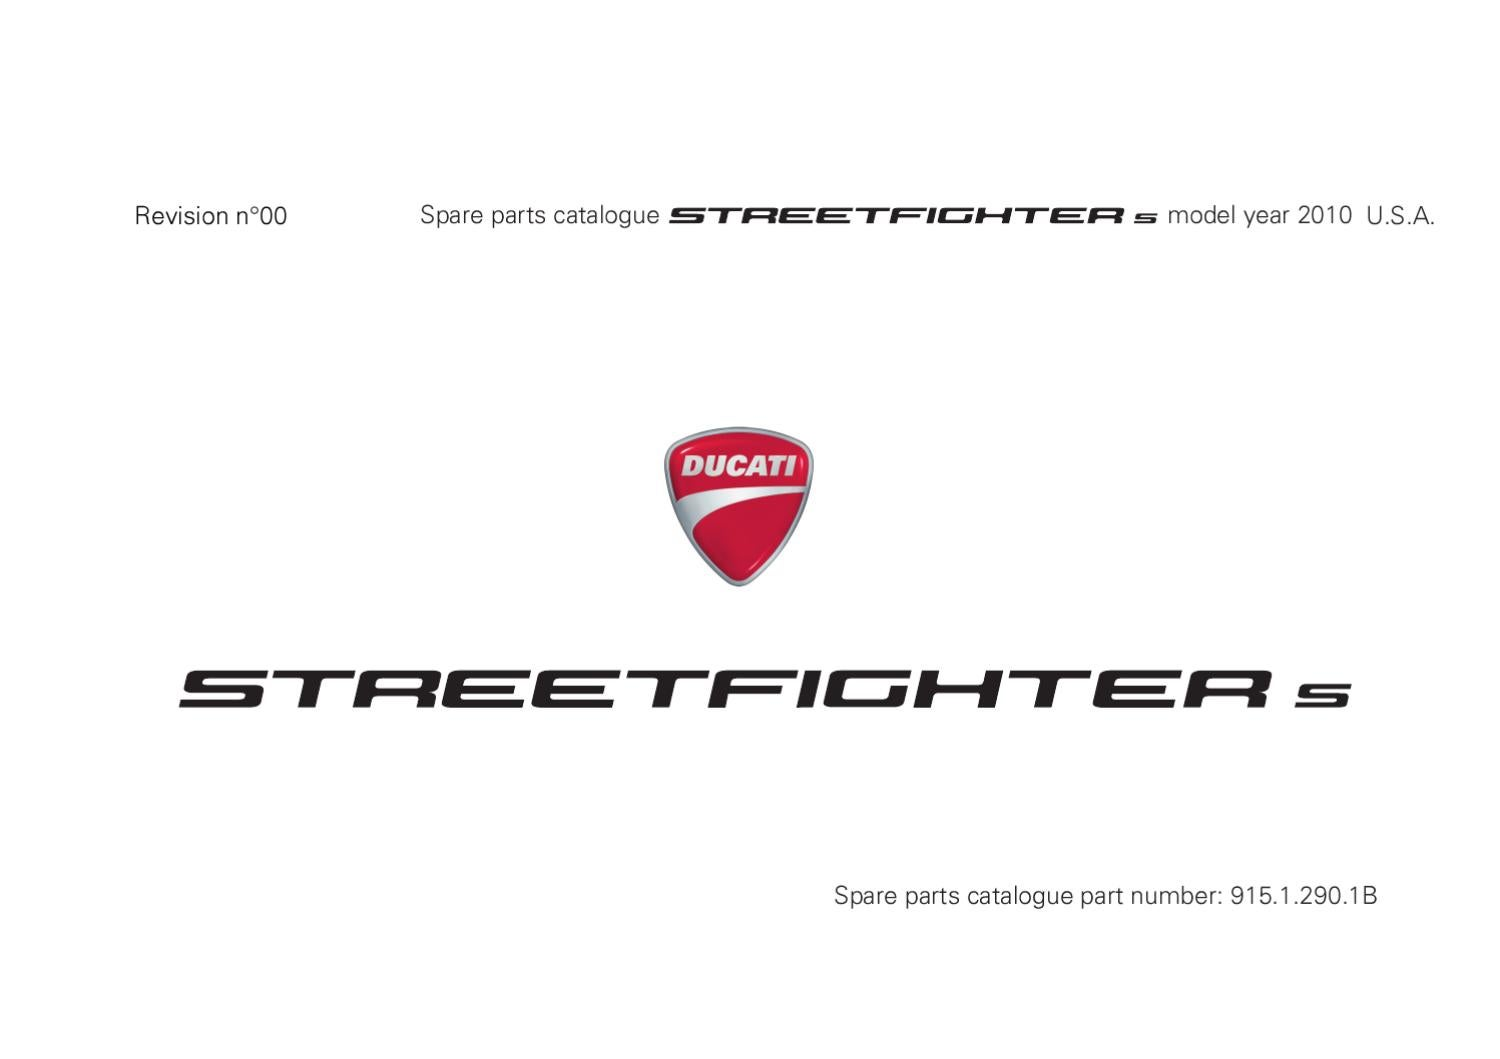 2010 Ducati Streetfighter S parts catalog by Keith Kennedy